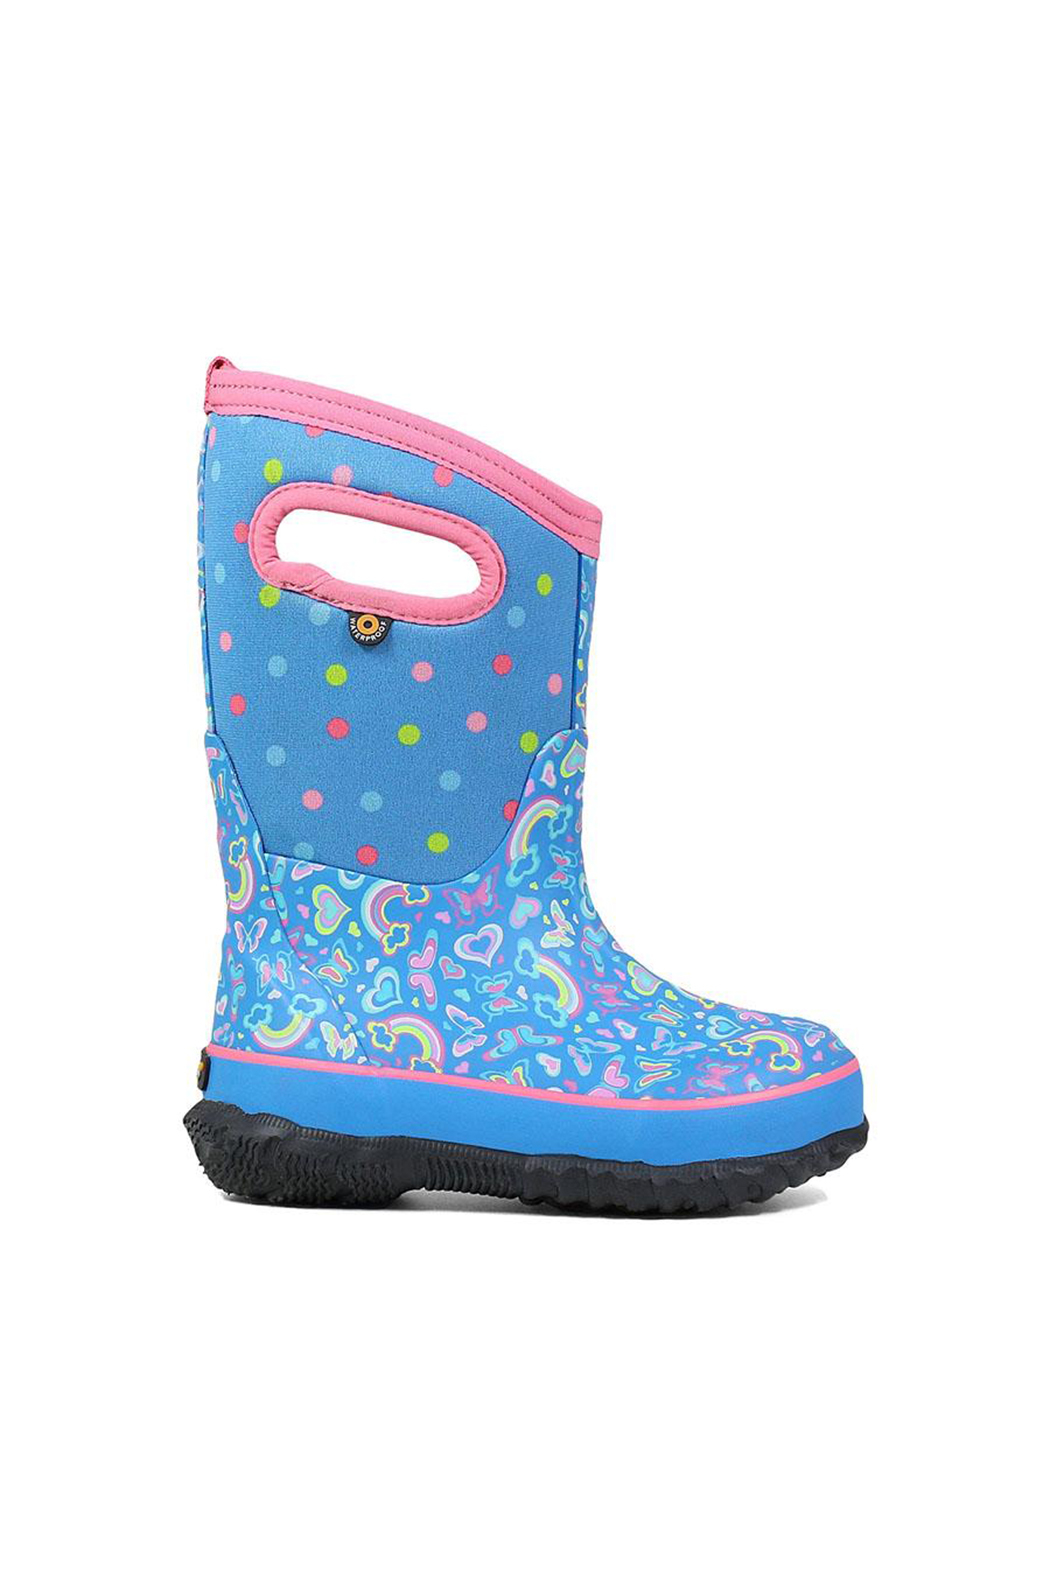 bogs  Classic Rainbow Kids Insulated Boots - Front Cropped Image